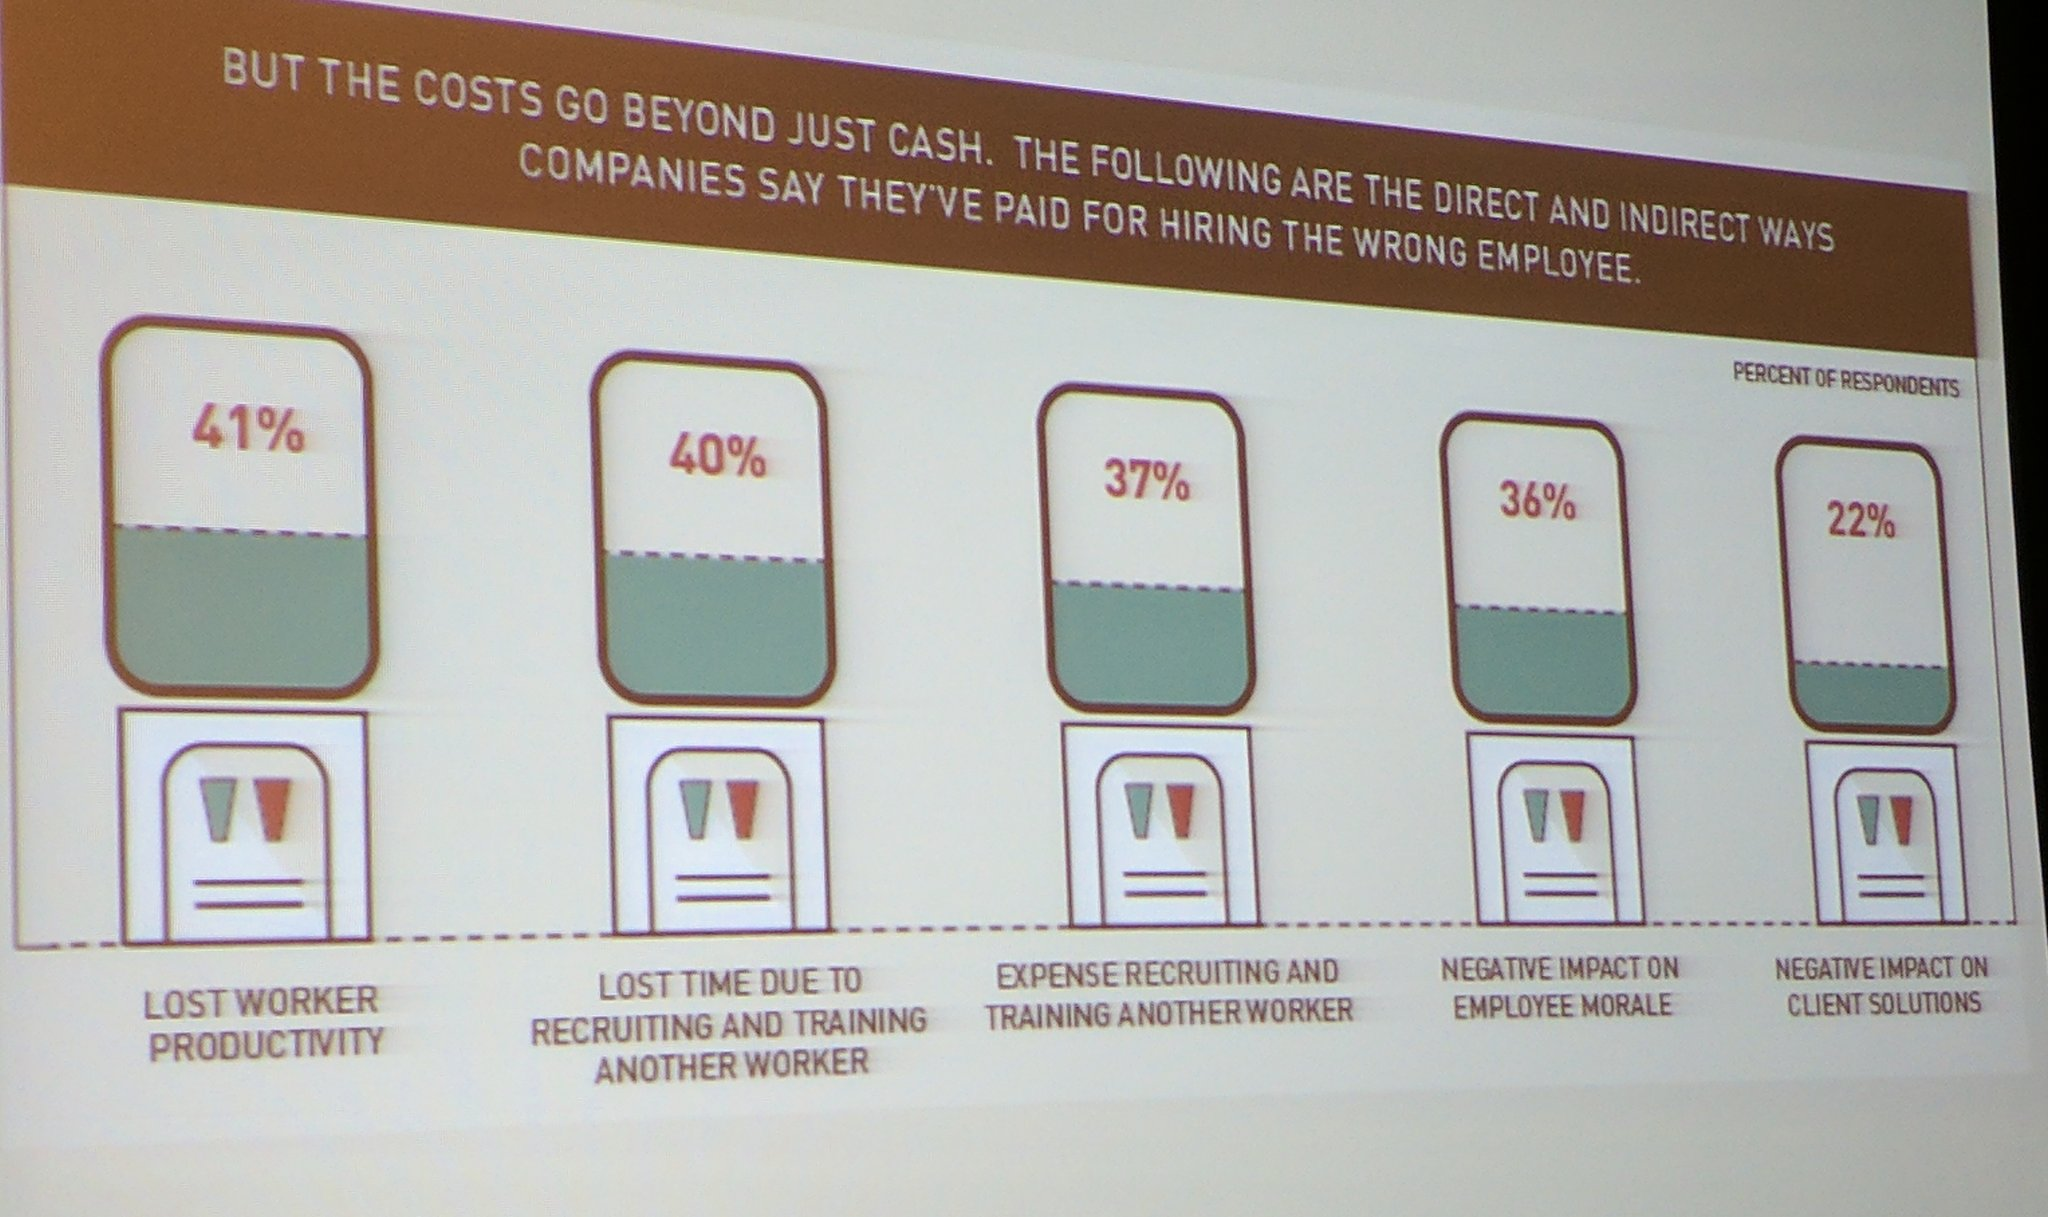 The cost of a bad hire. @DwaneLay  #SRSC https://t.co/24XQktkmpa